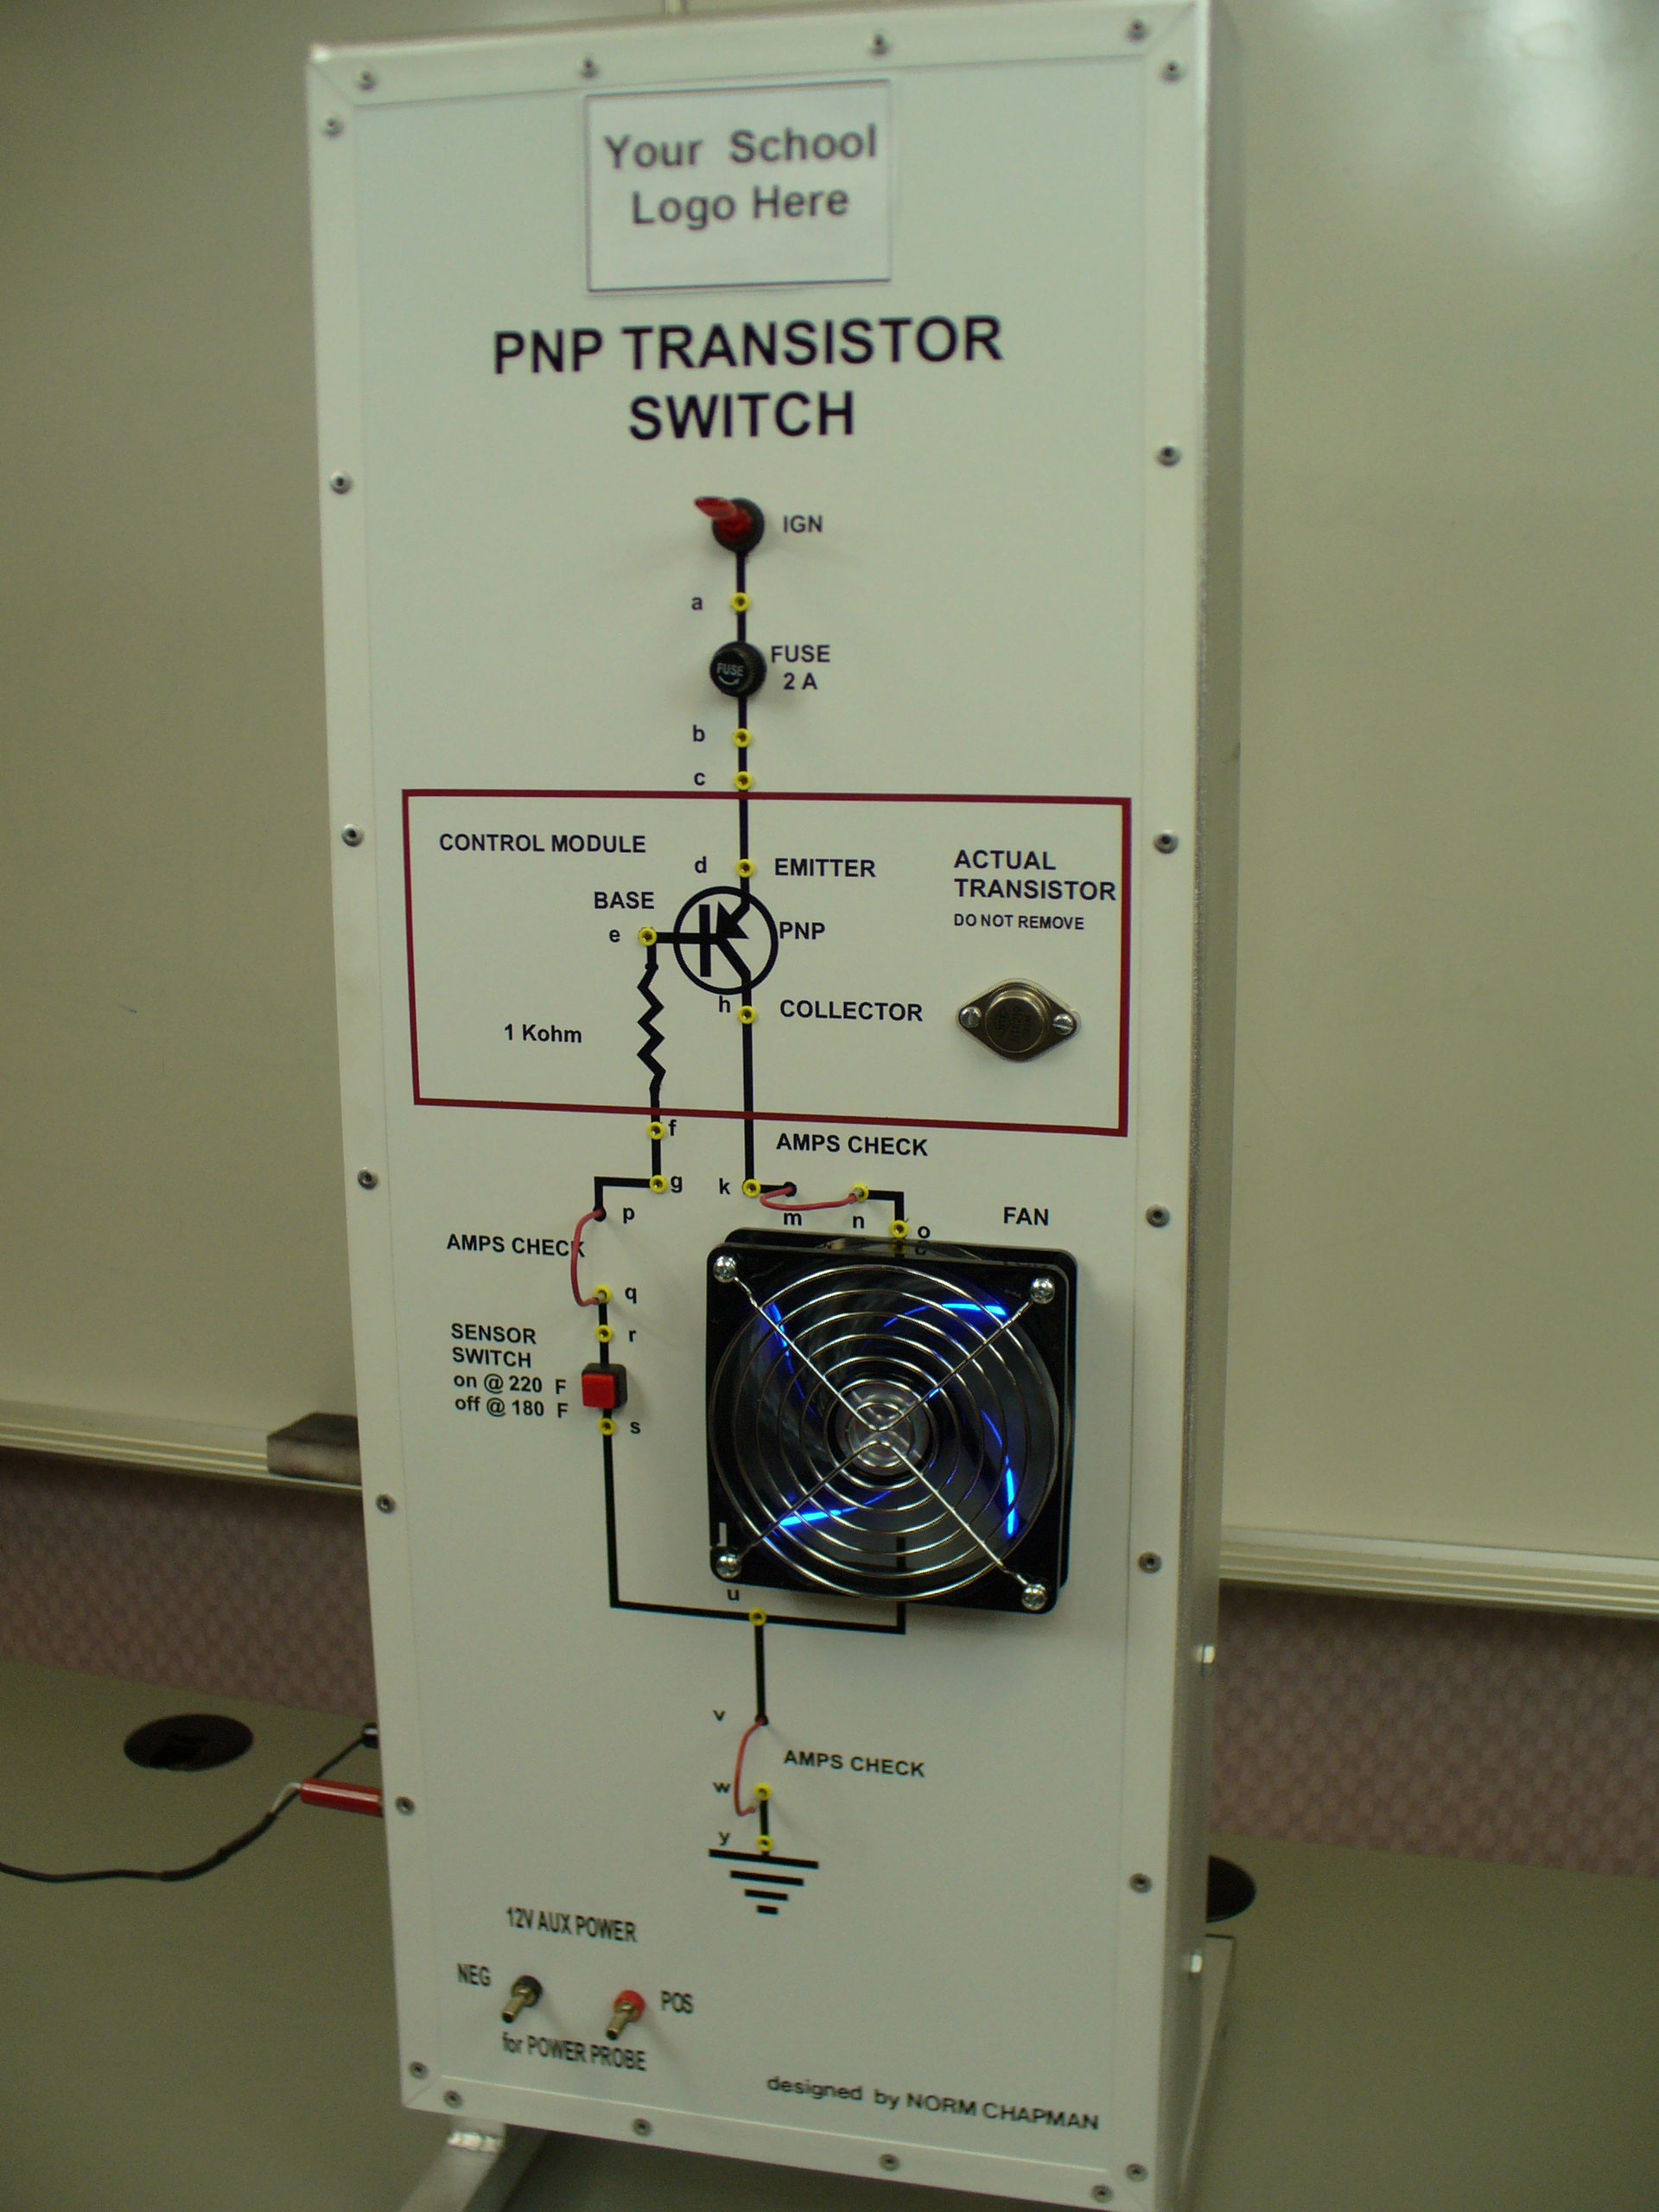 Pnp Transistor Circuit Affordable Electrical Training Aids Diagram P1040188